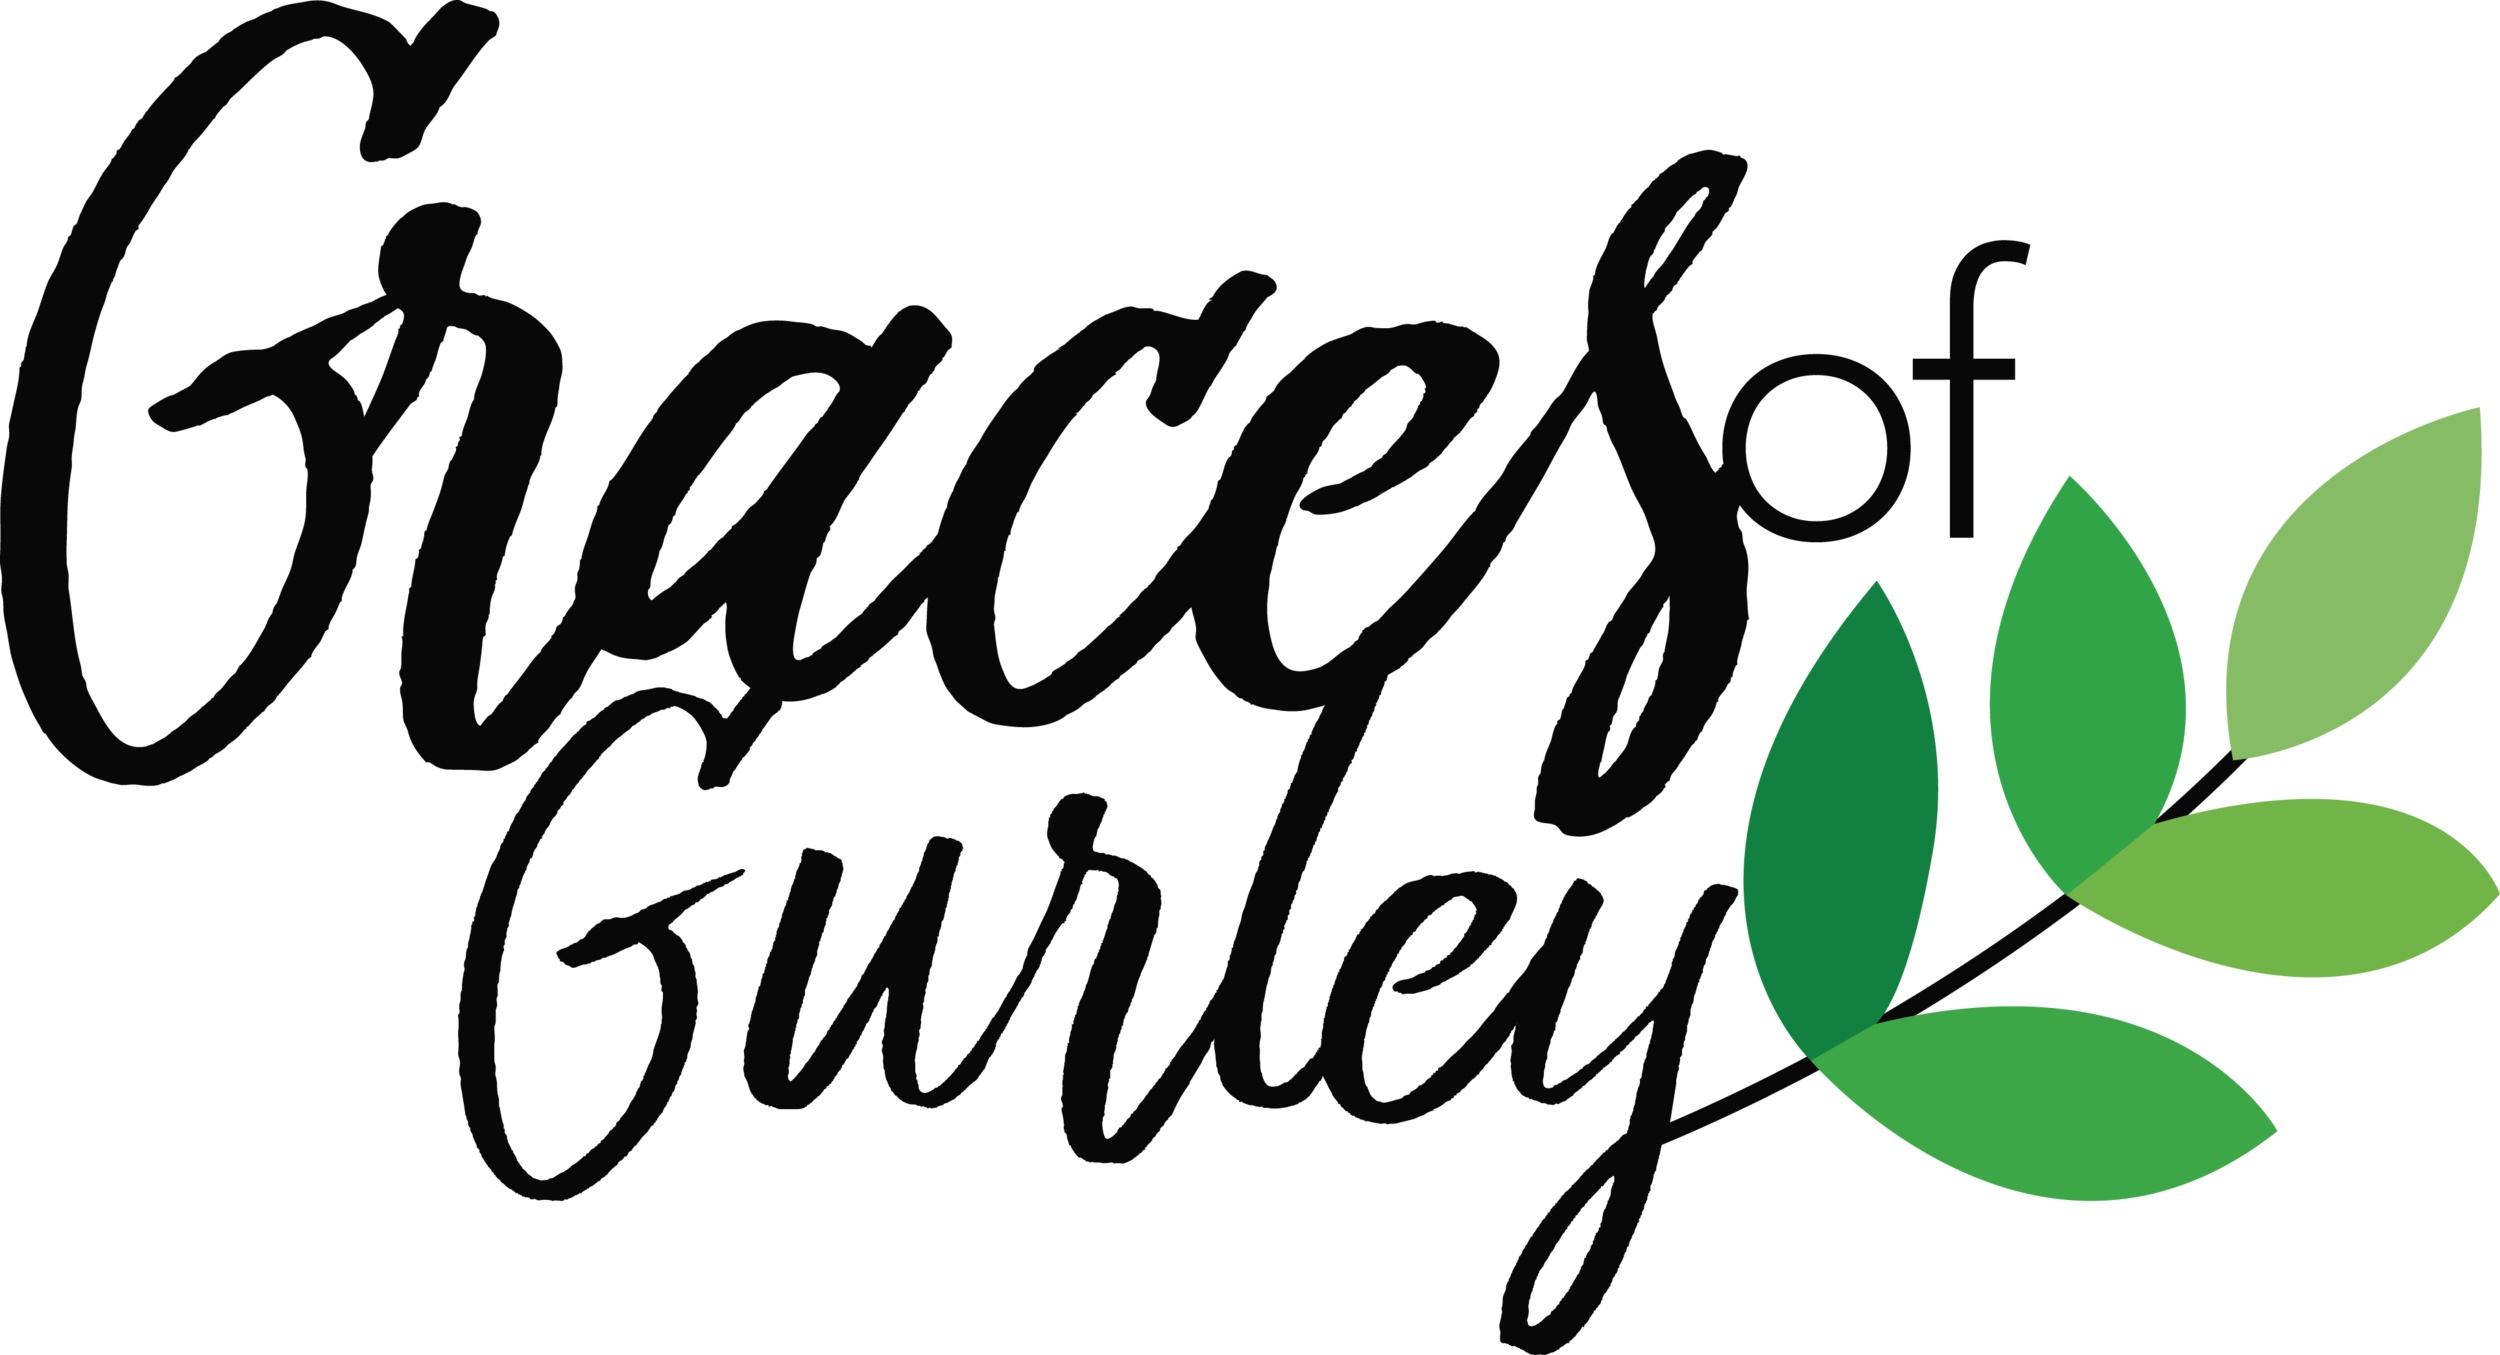 About Graces of Gurley - A faith-based ministry focused on sharing Christ with the Gurley community